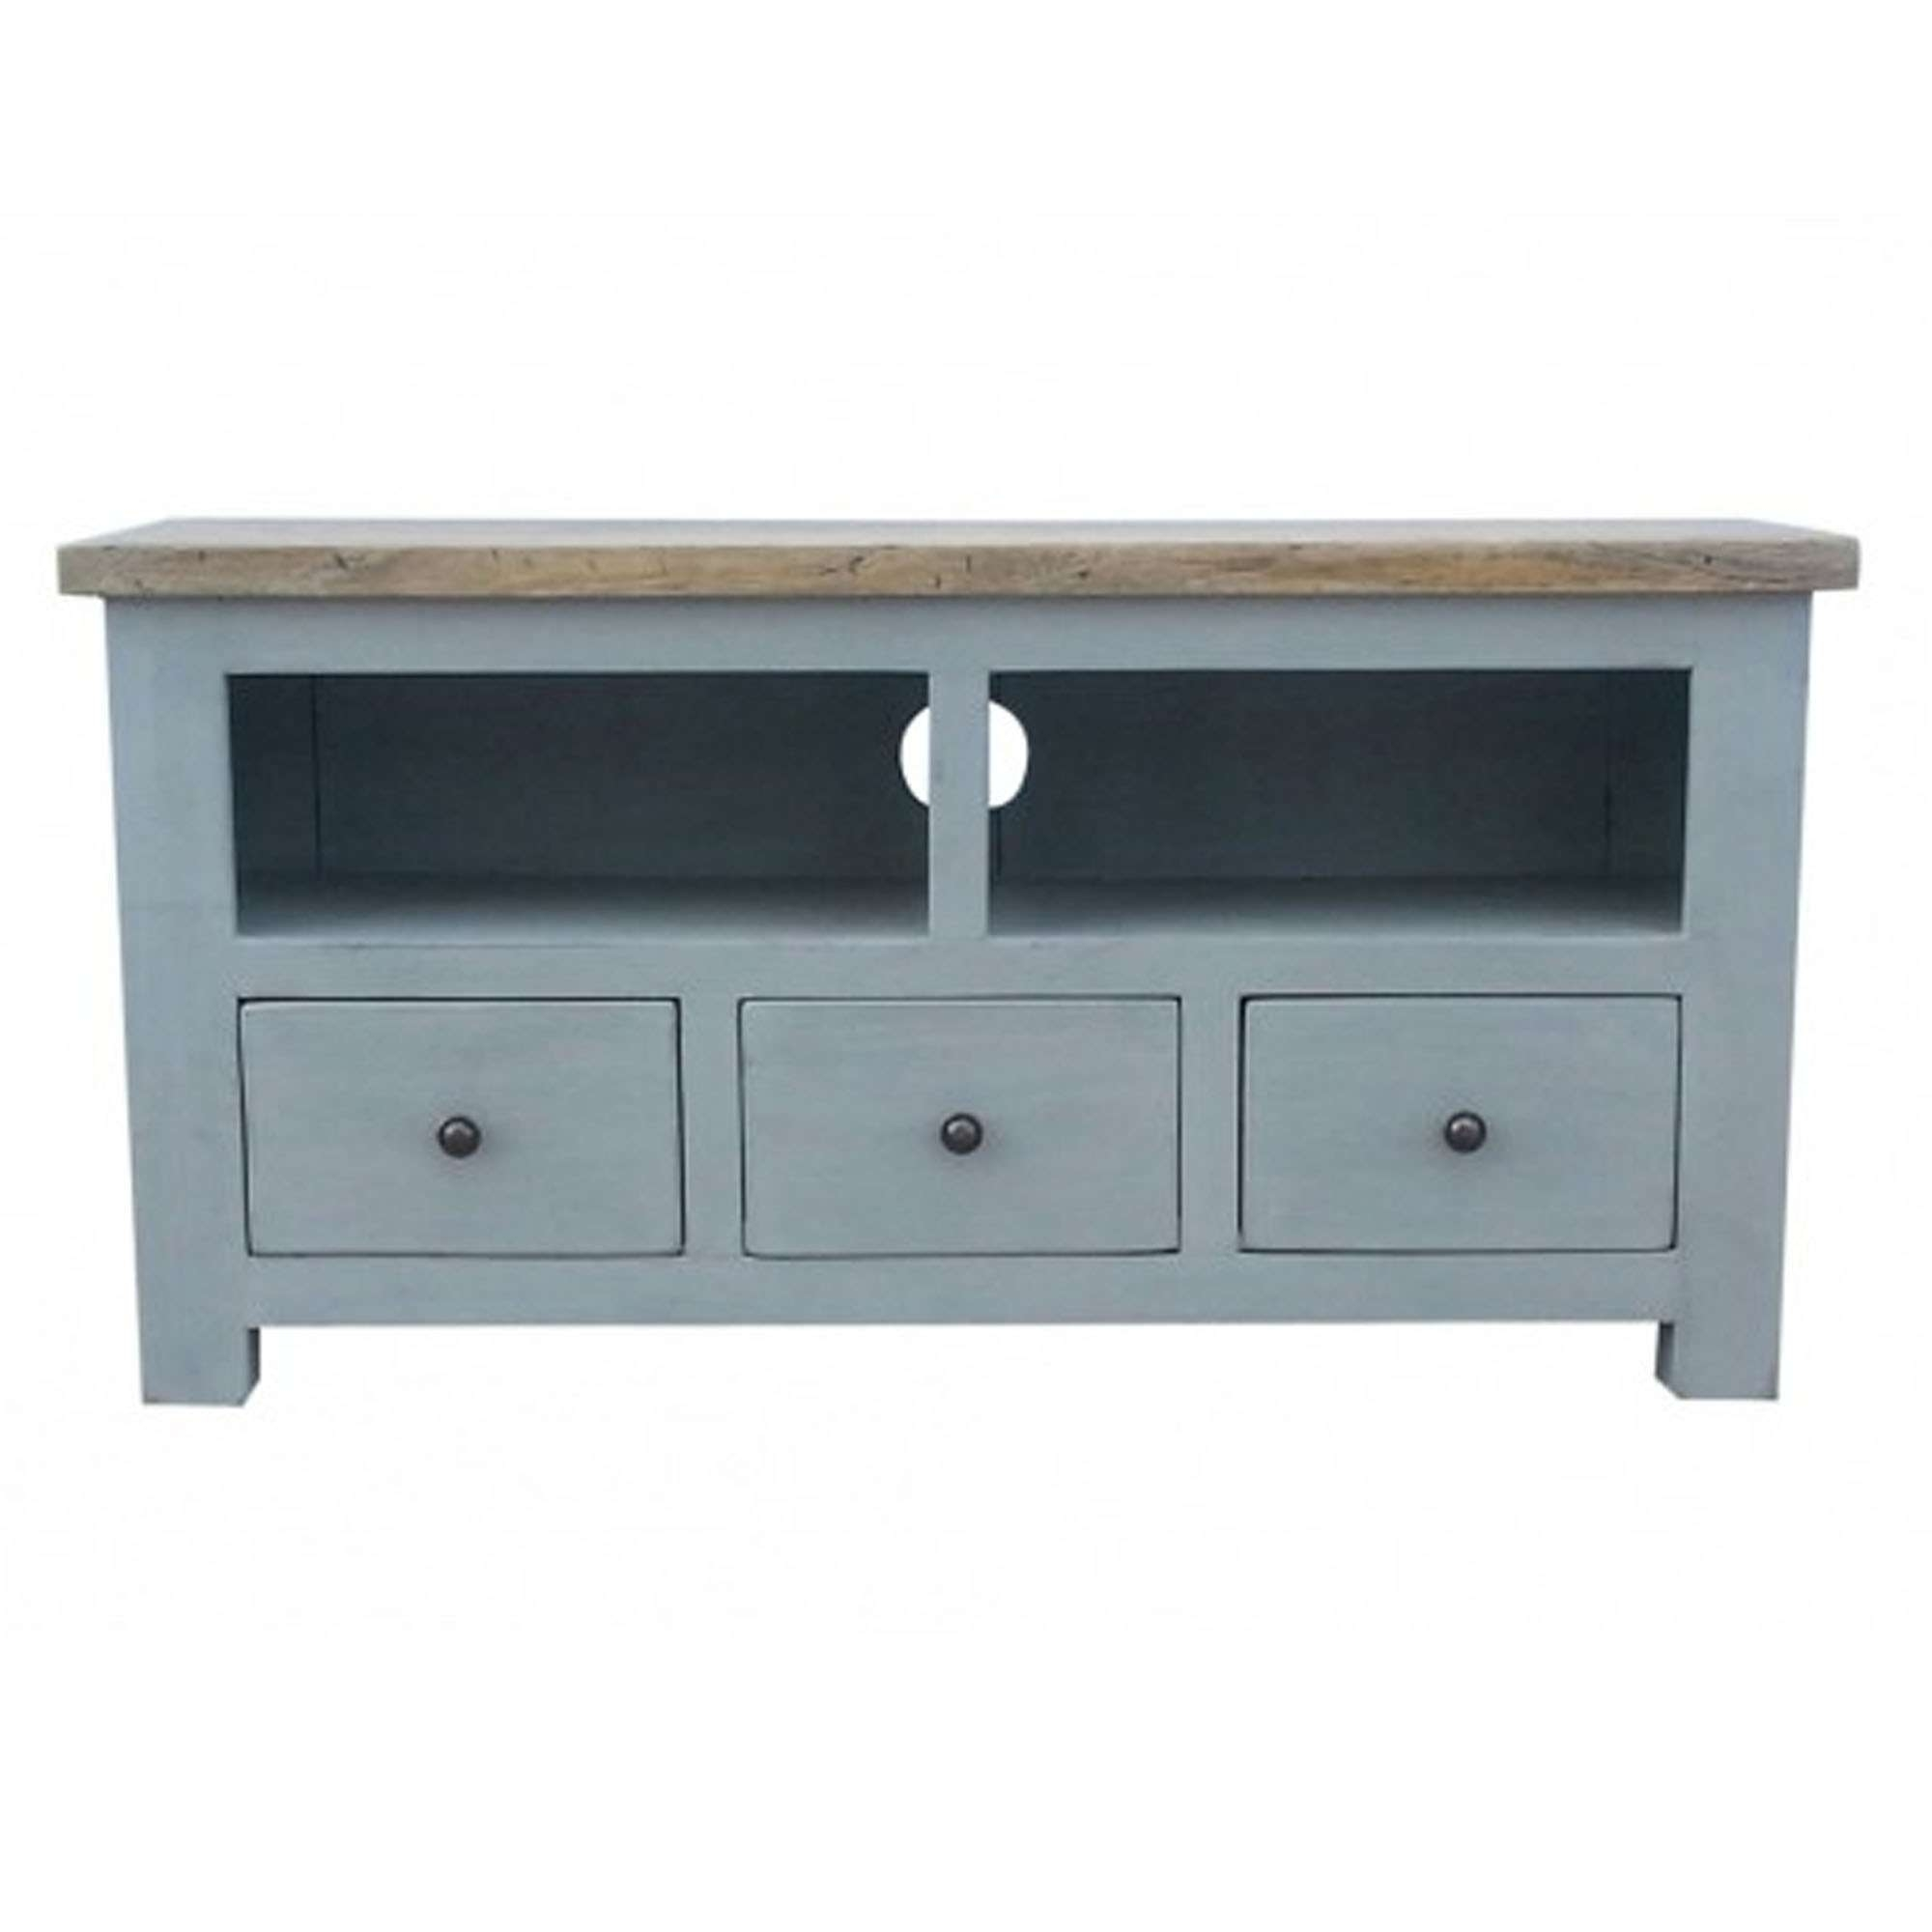 Colorado Shabby Chic Tv Cabinet | Shabby Chic Furniture | Tv Cabinets Regarding Shabby Chic Tv Cabinets (View 3 of 20)